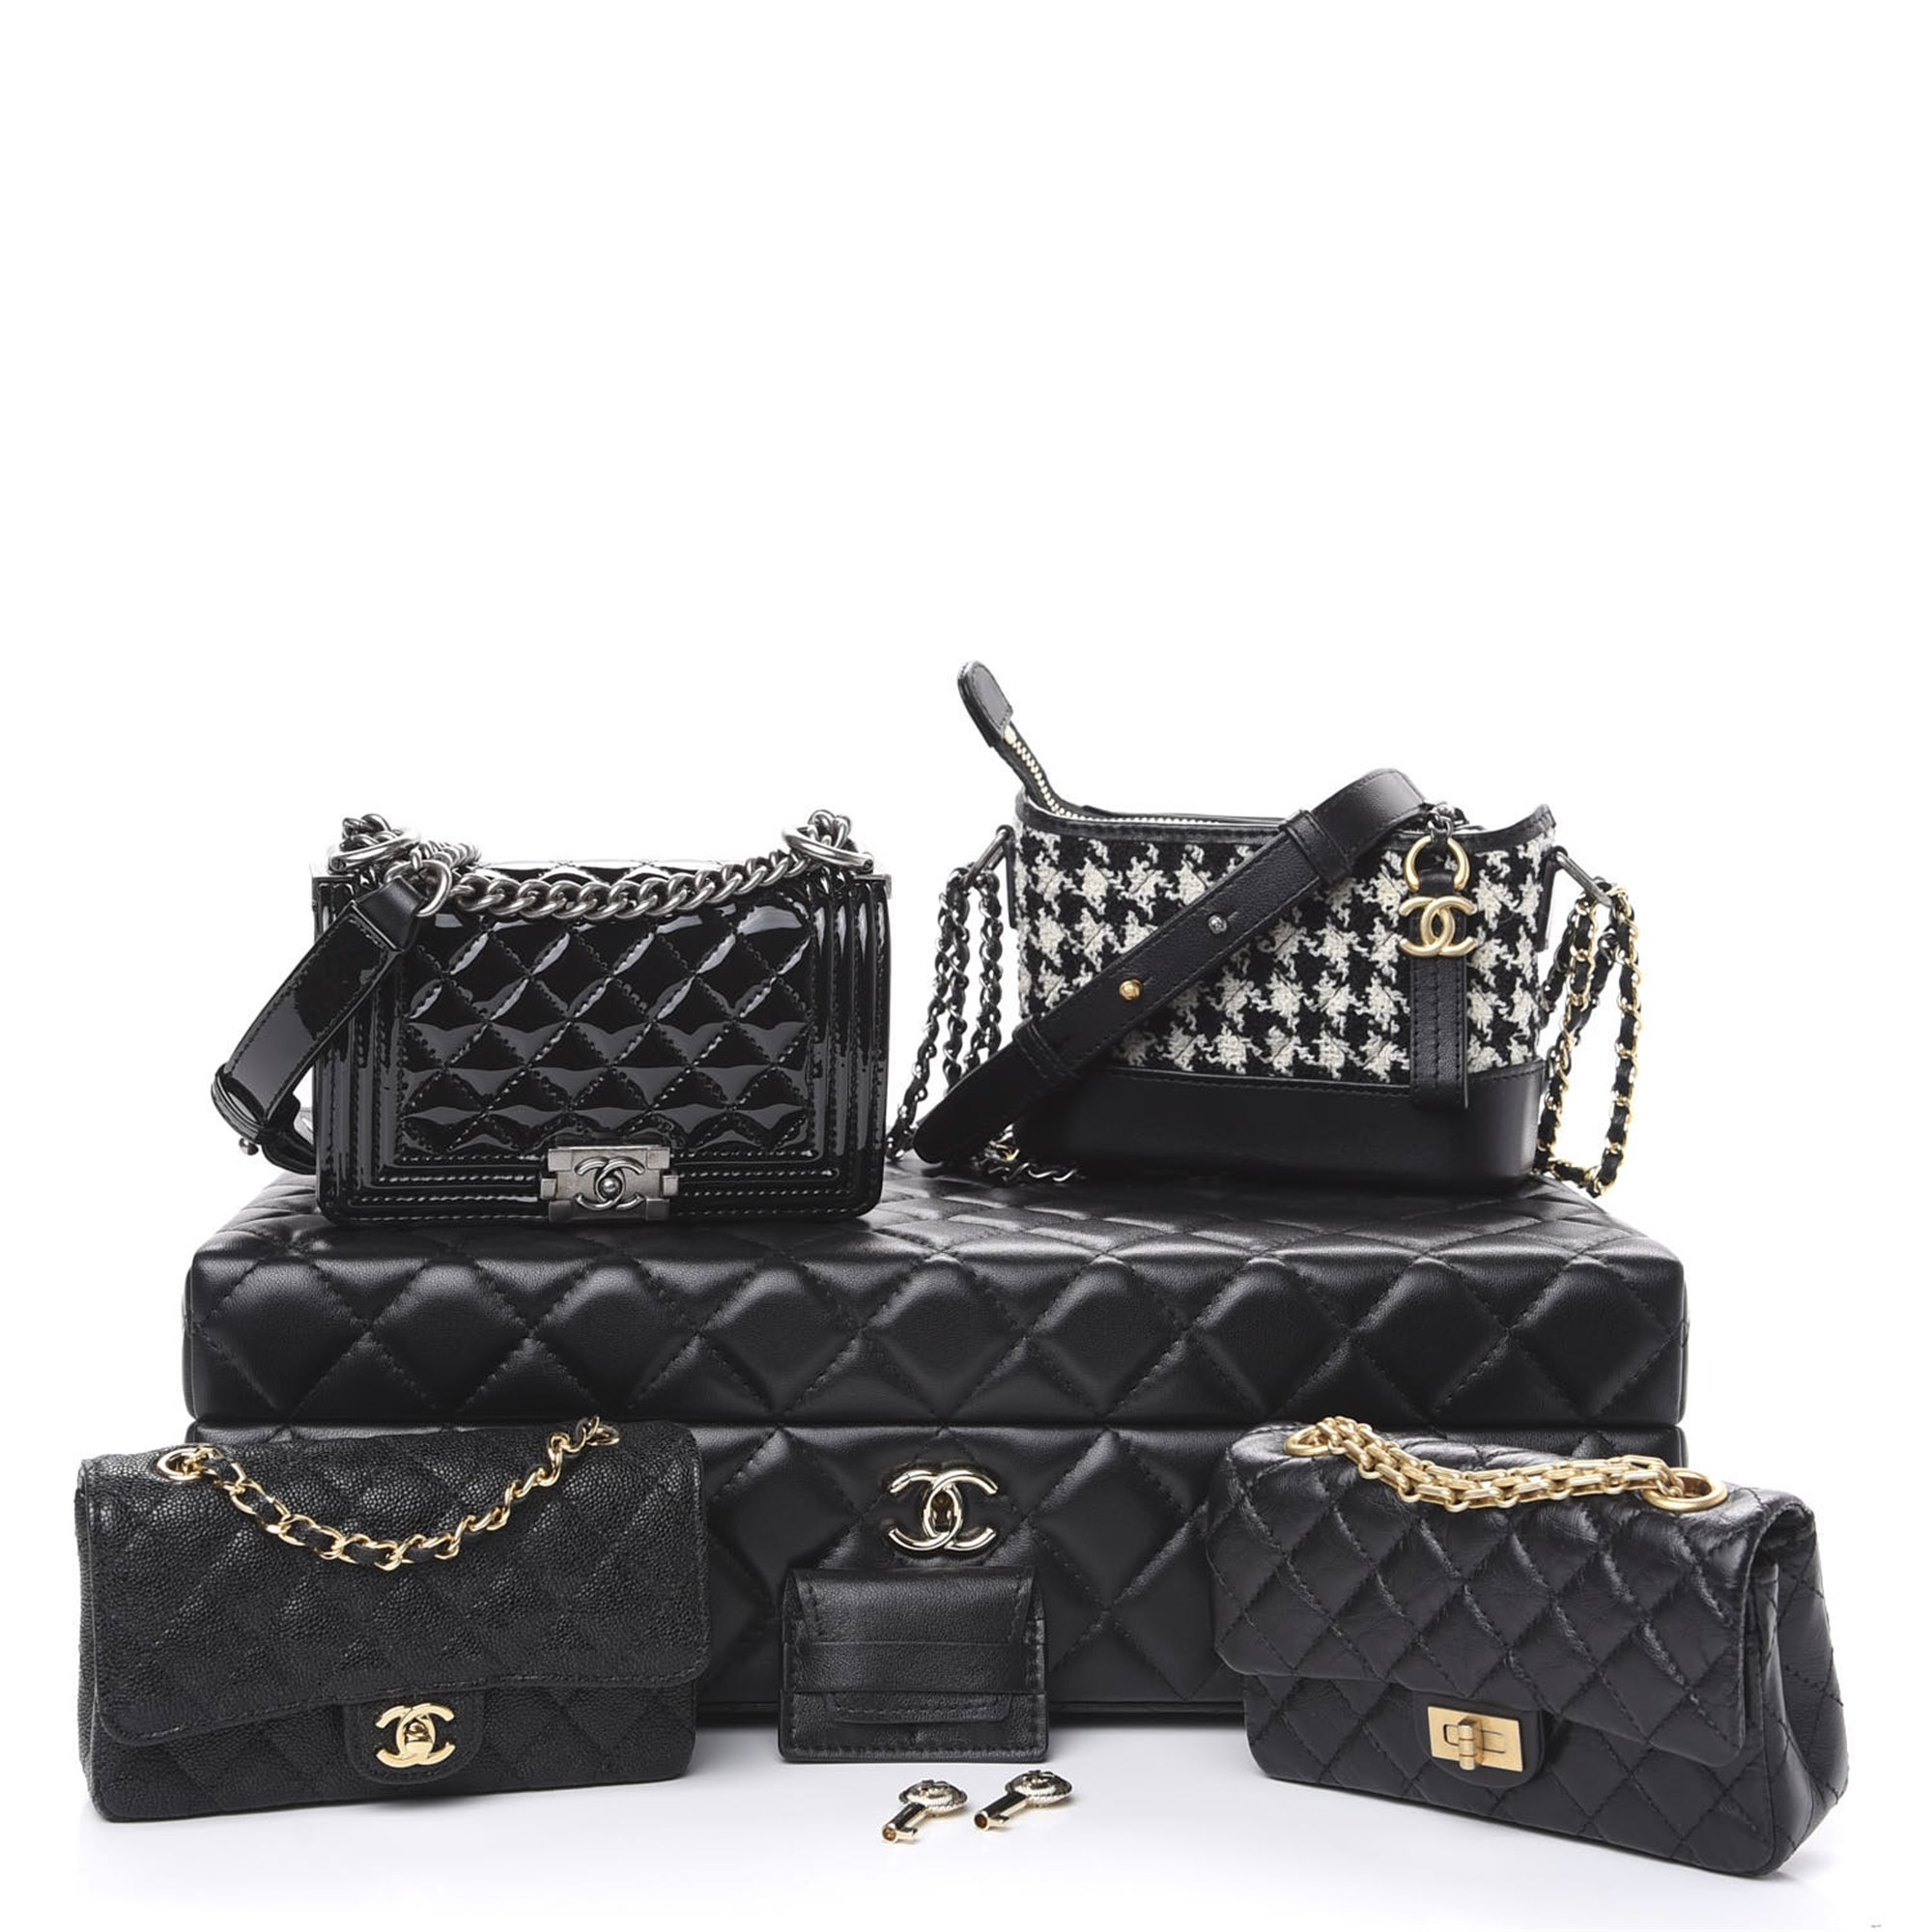 Chanel Black Quilted Lambskin, Calfskin Leather, Patent Leather & Tweed Success Story Mini Bag Set of Four